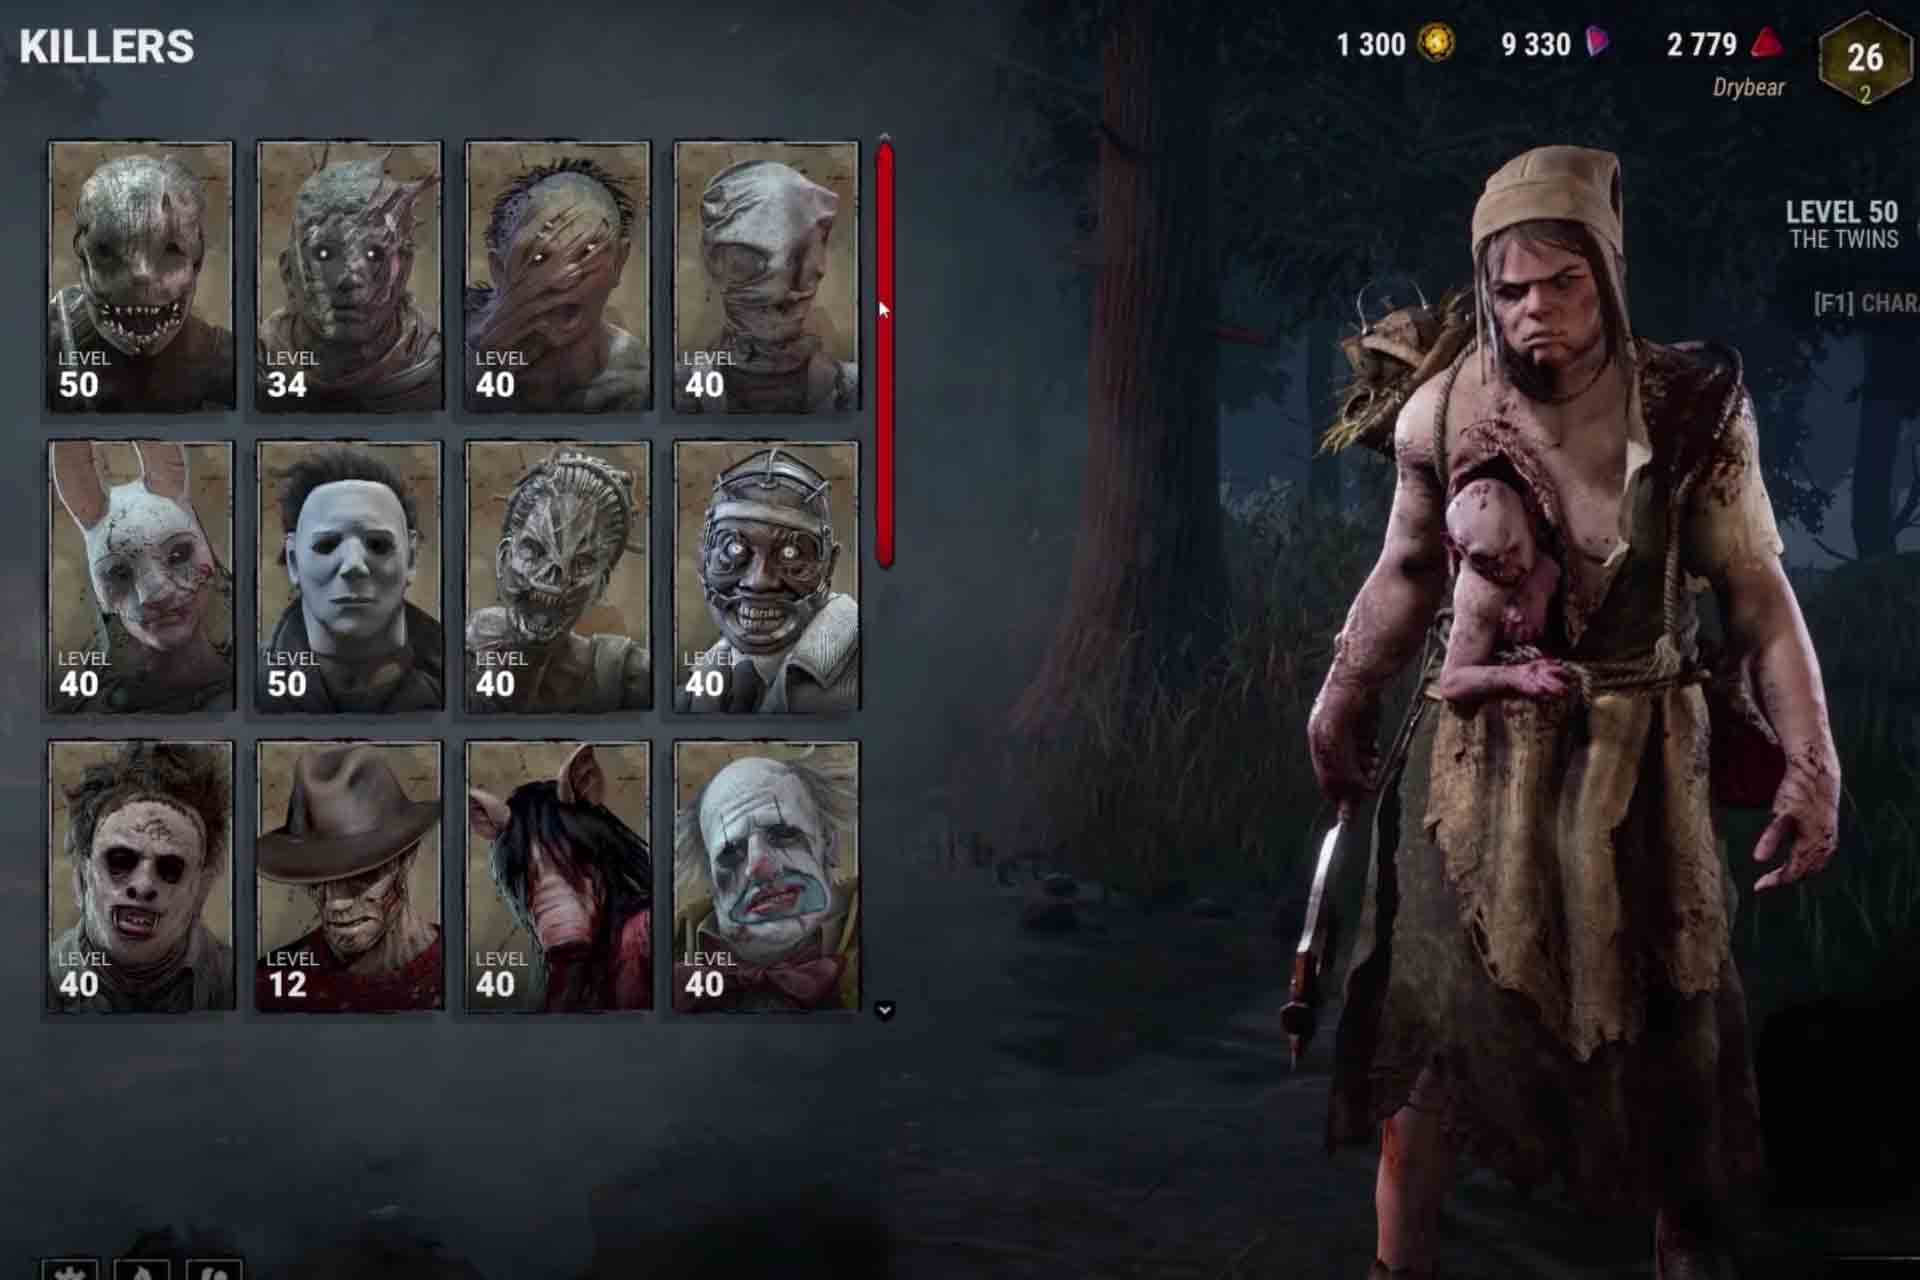 The Killer characters in Dead by Daylight game.